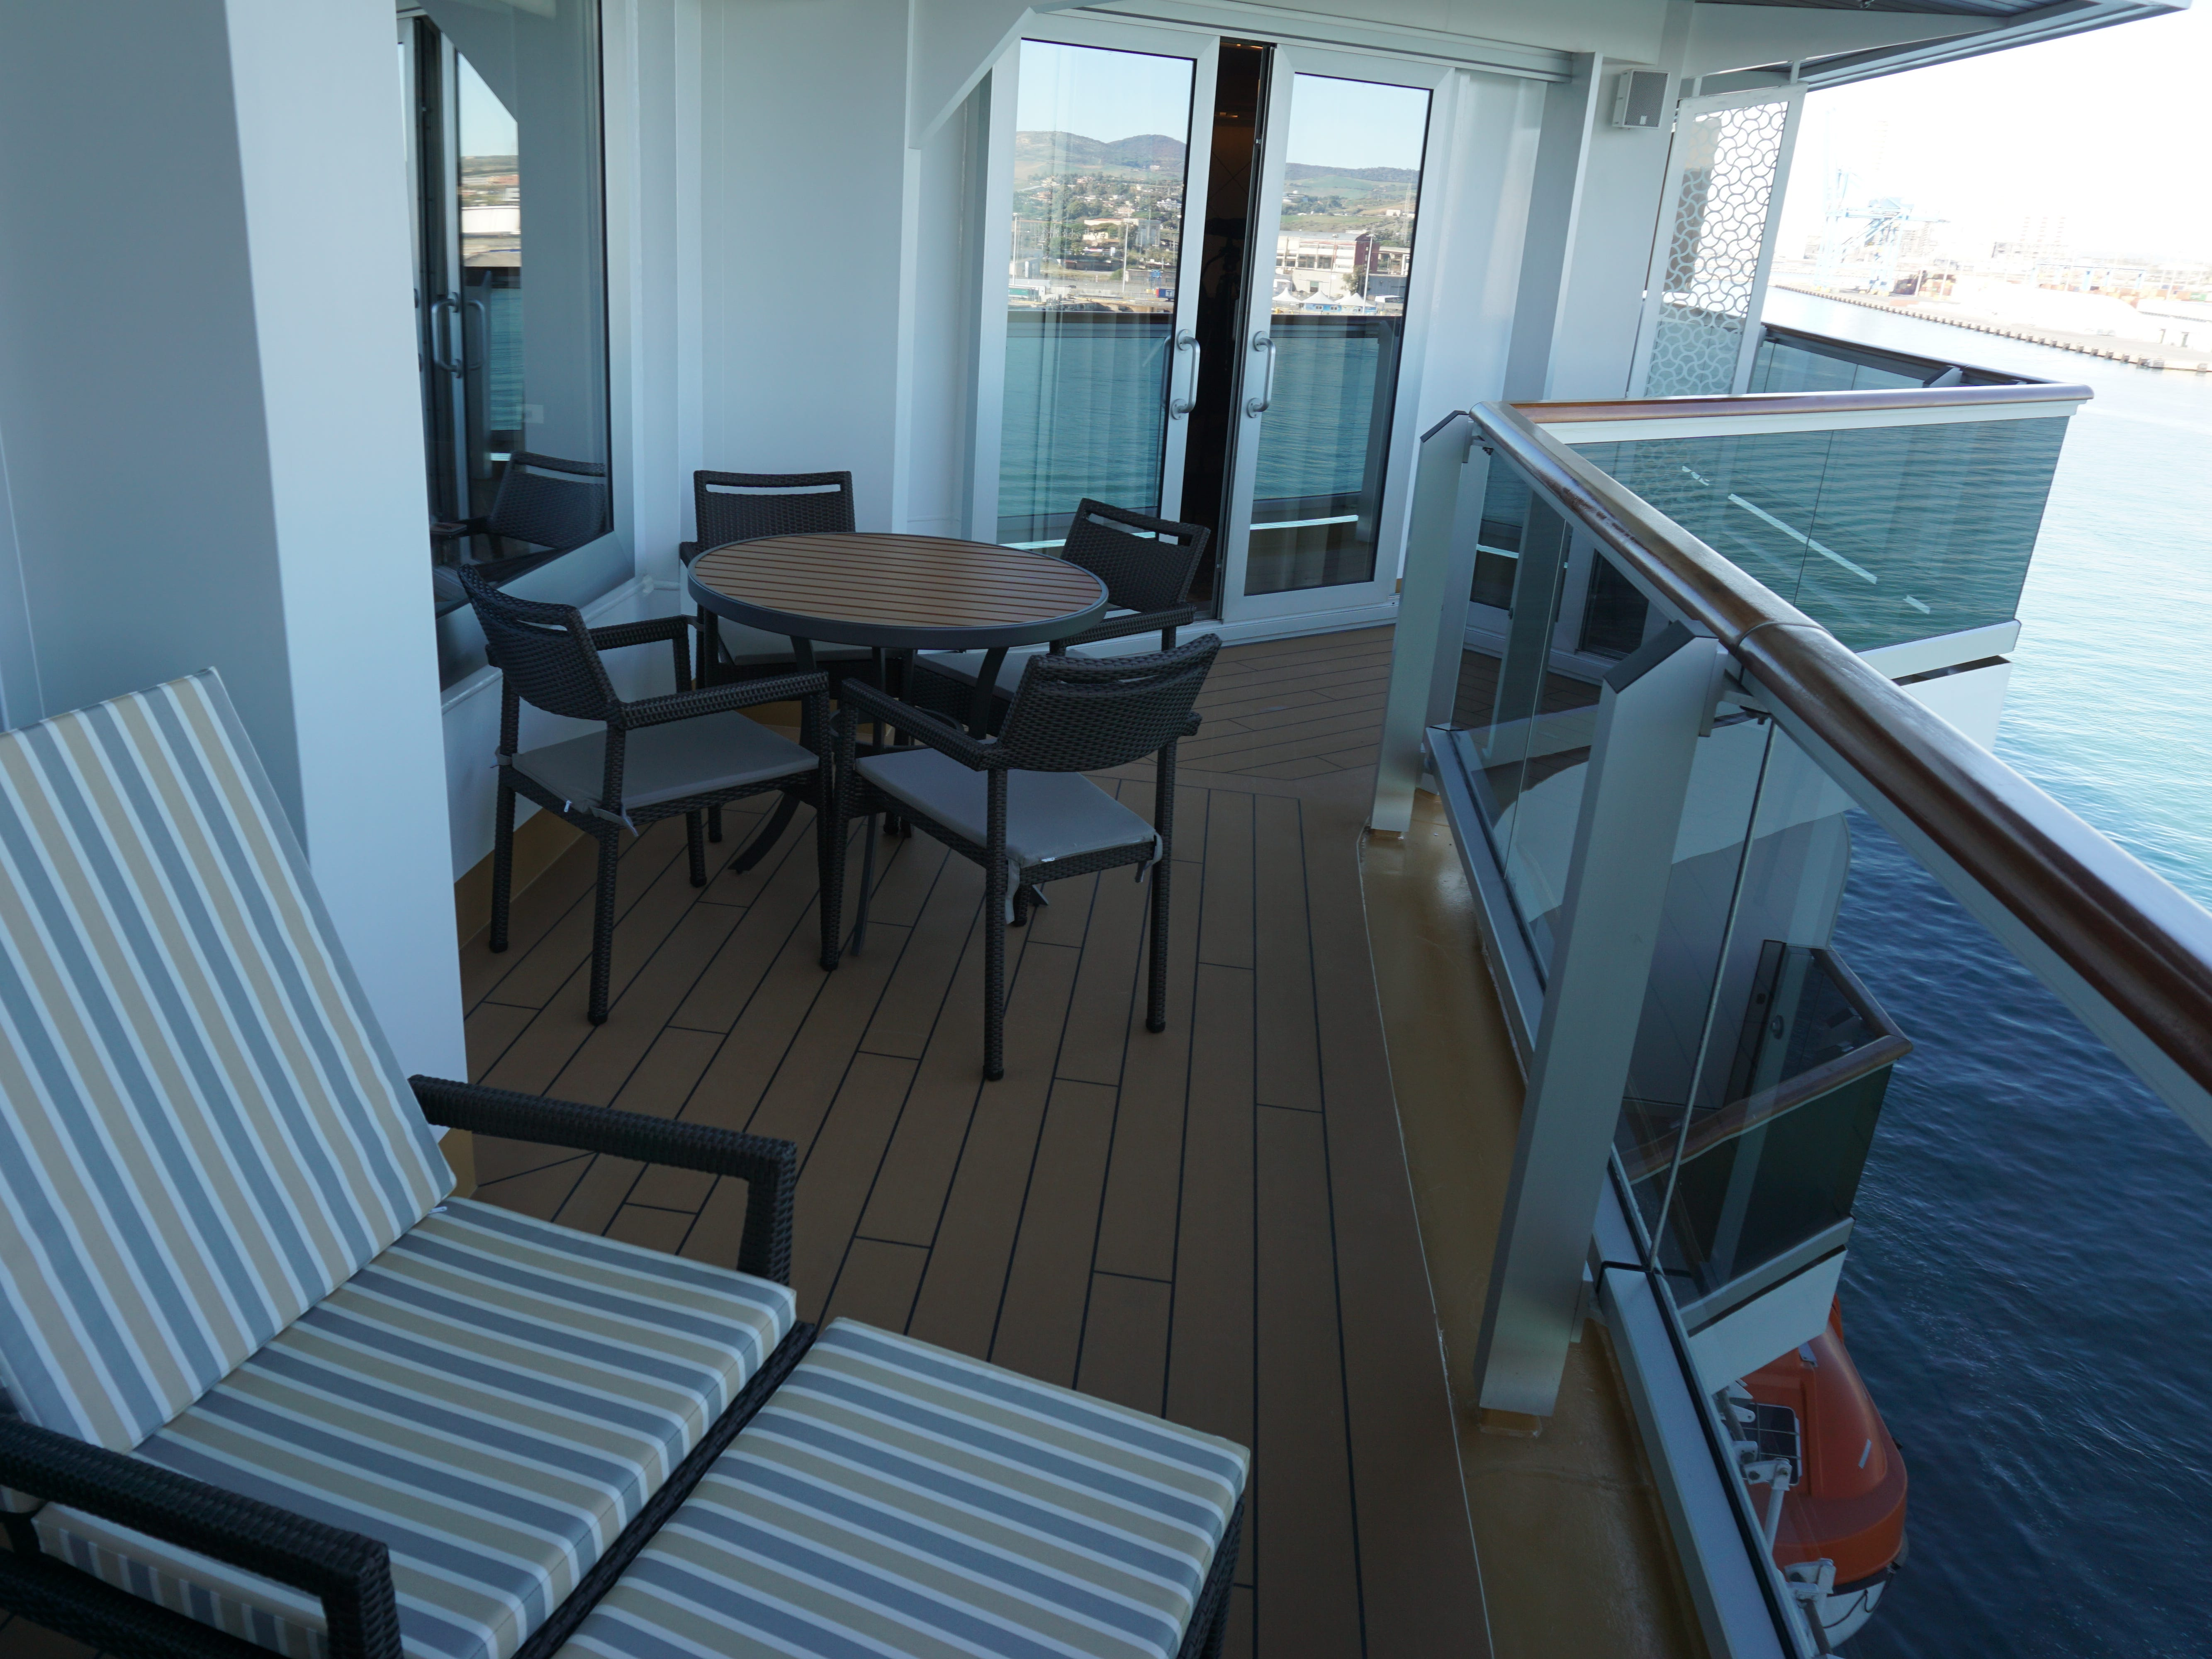 This portion of the Pinnacle Suite's balcony has loungers and a dining nook.